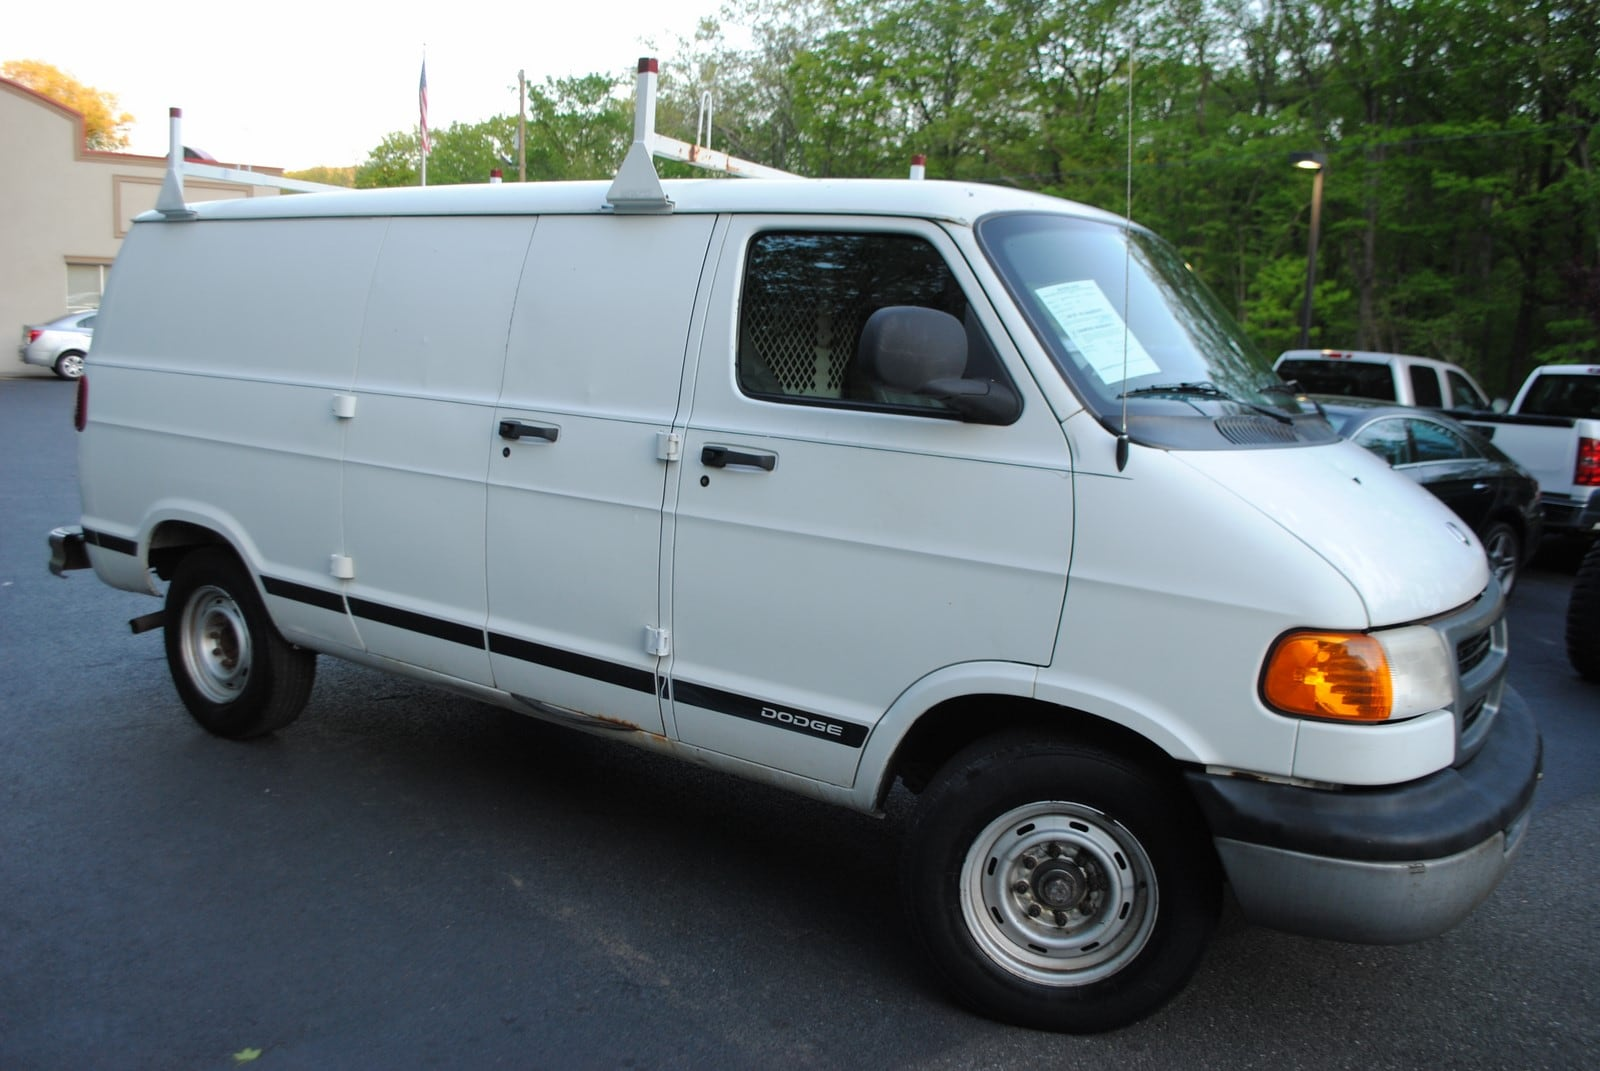 used 2000 dodge ram van 2500 for sale west milford nj. Black Bedroom Furniture Sets. Home Design Ideas